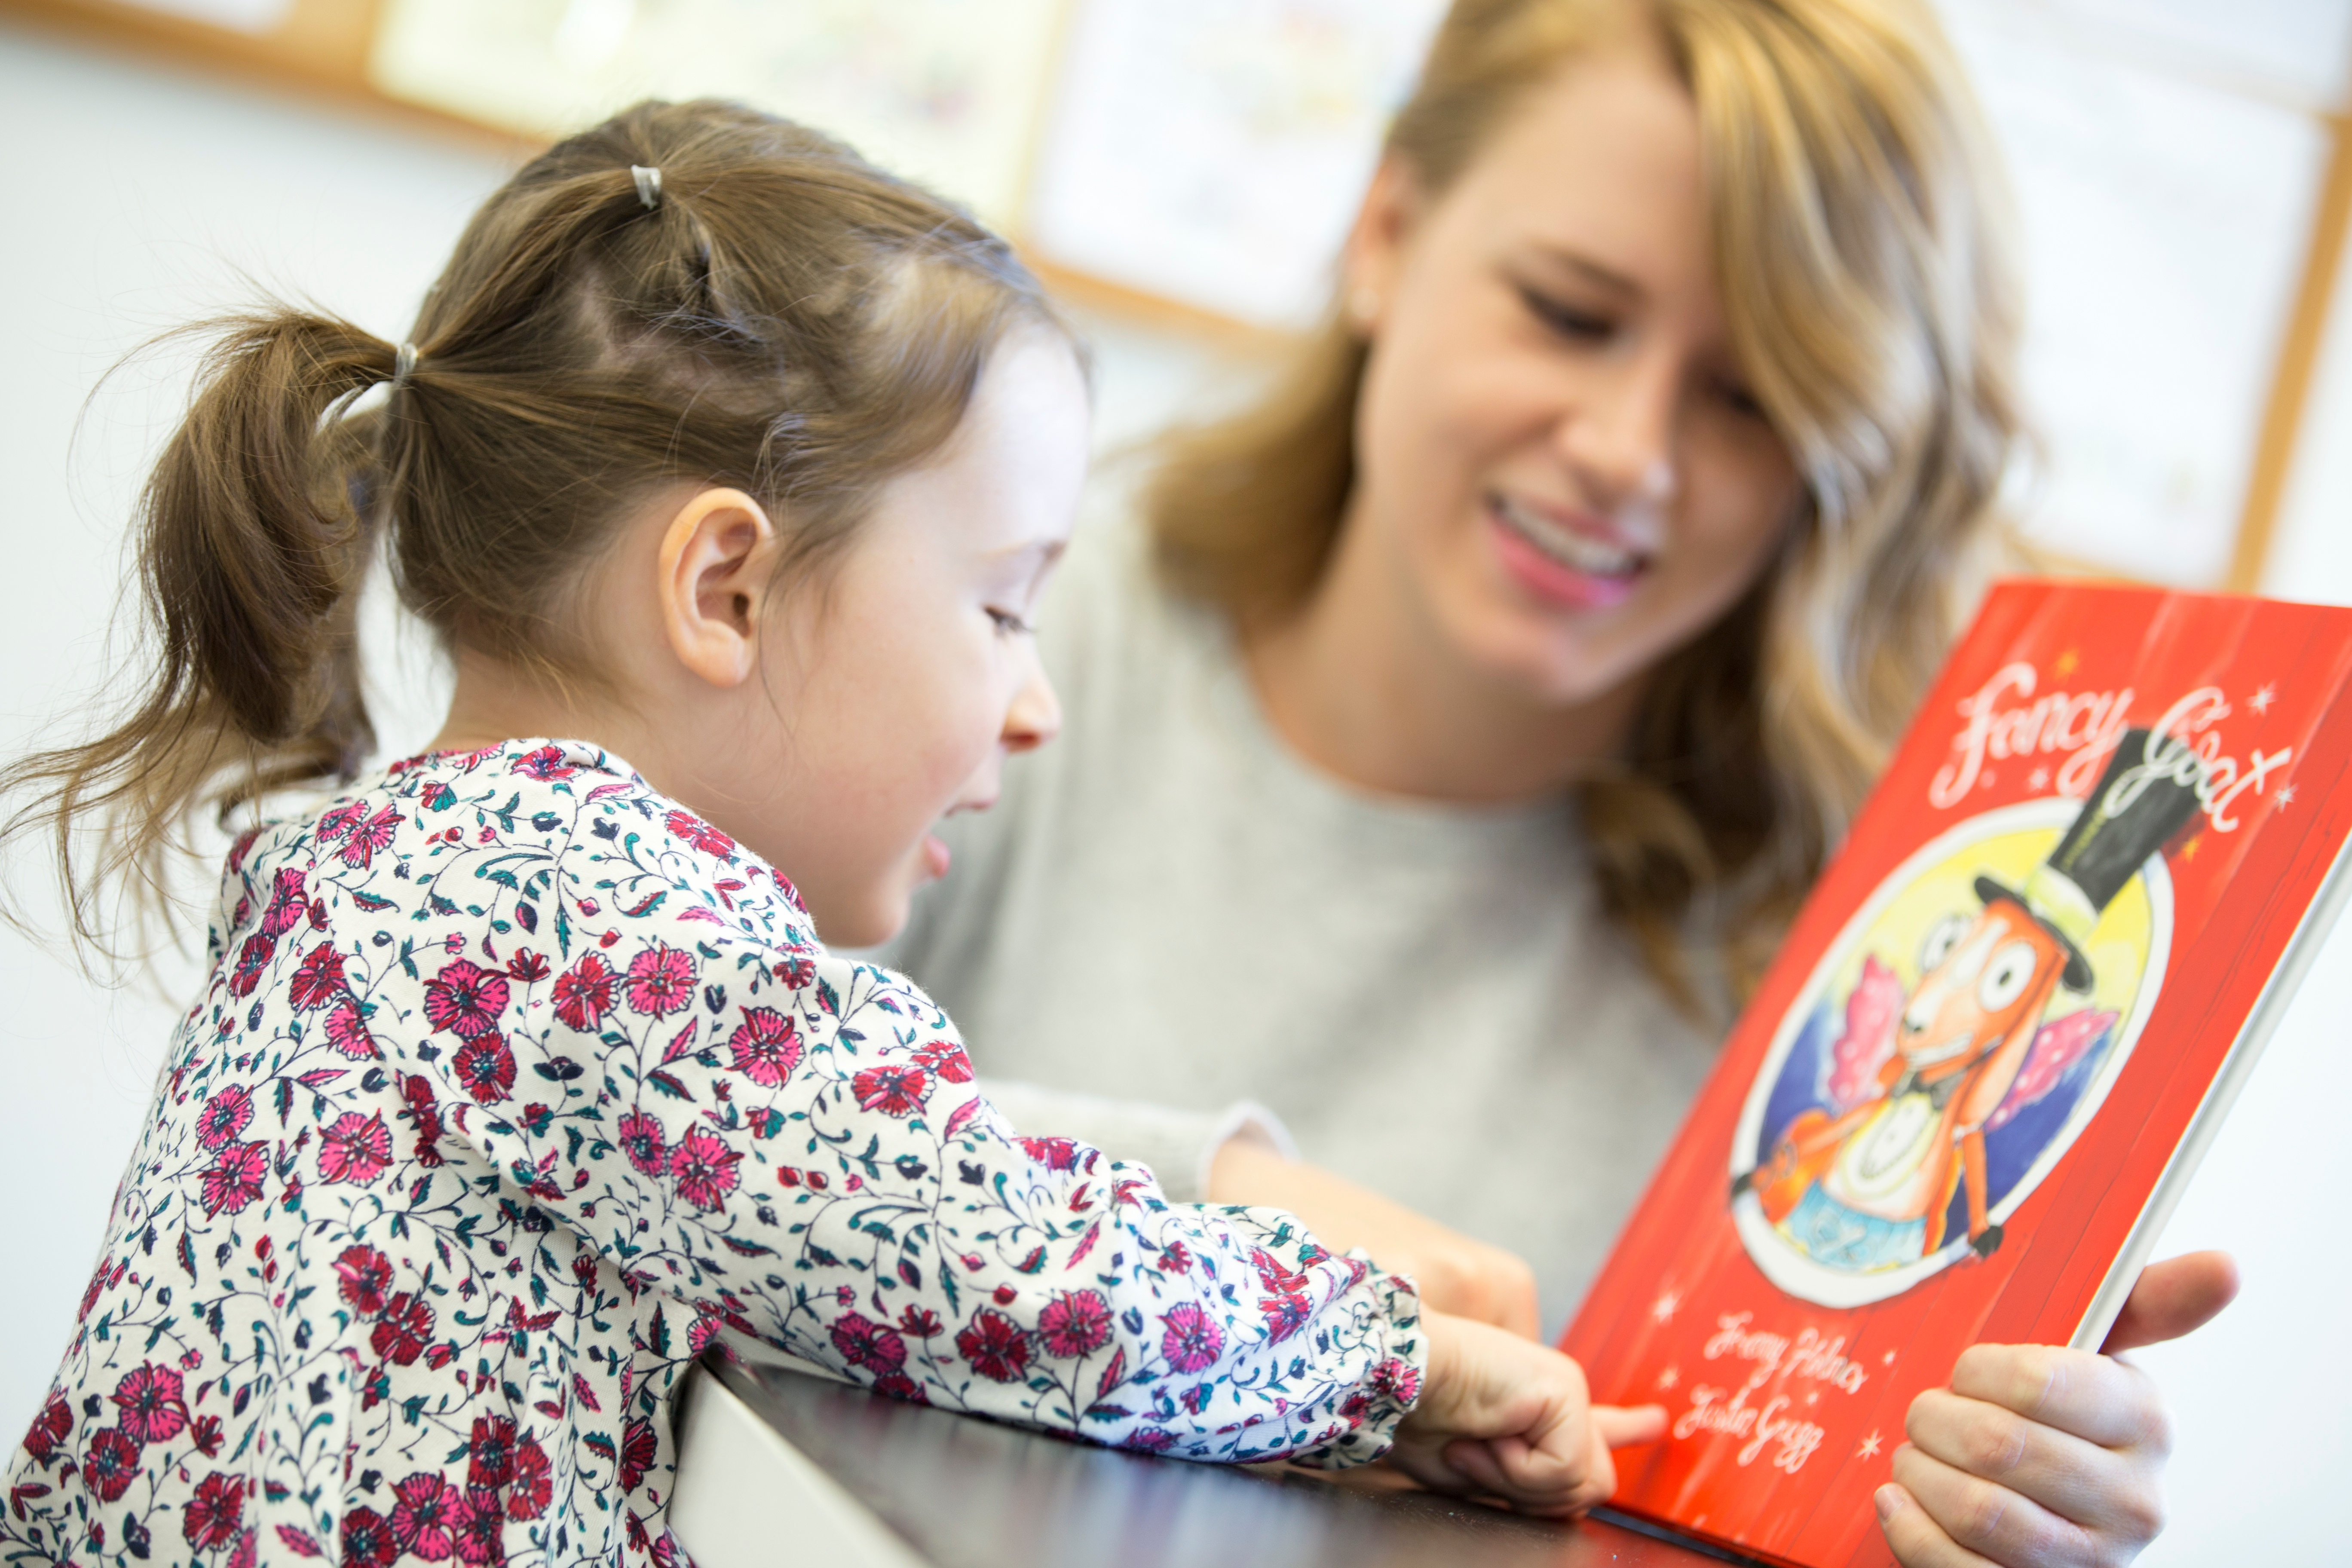 halifax learning reading program reading support literacy education read write spell learn evidence-based tutor tutoring